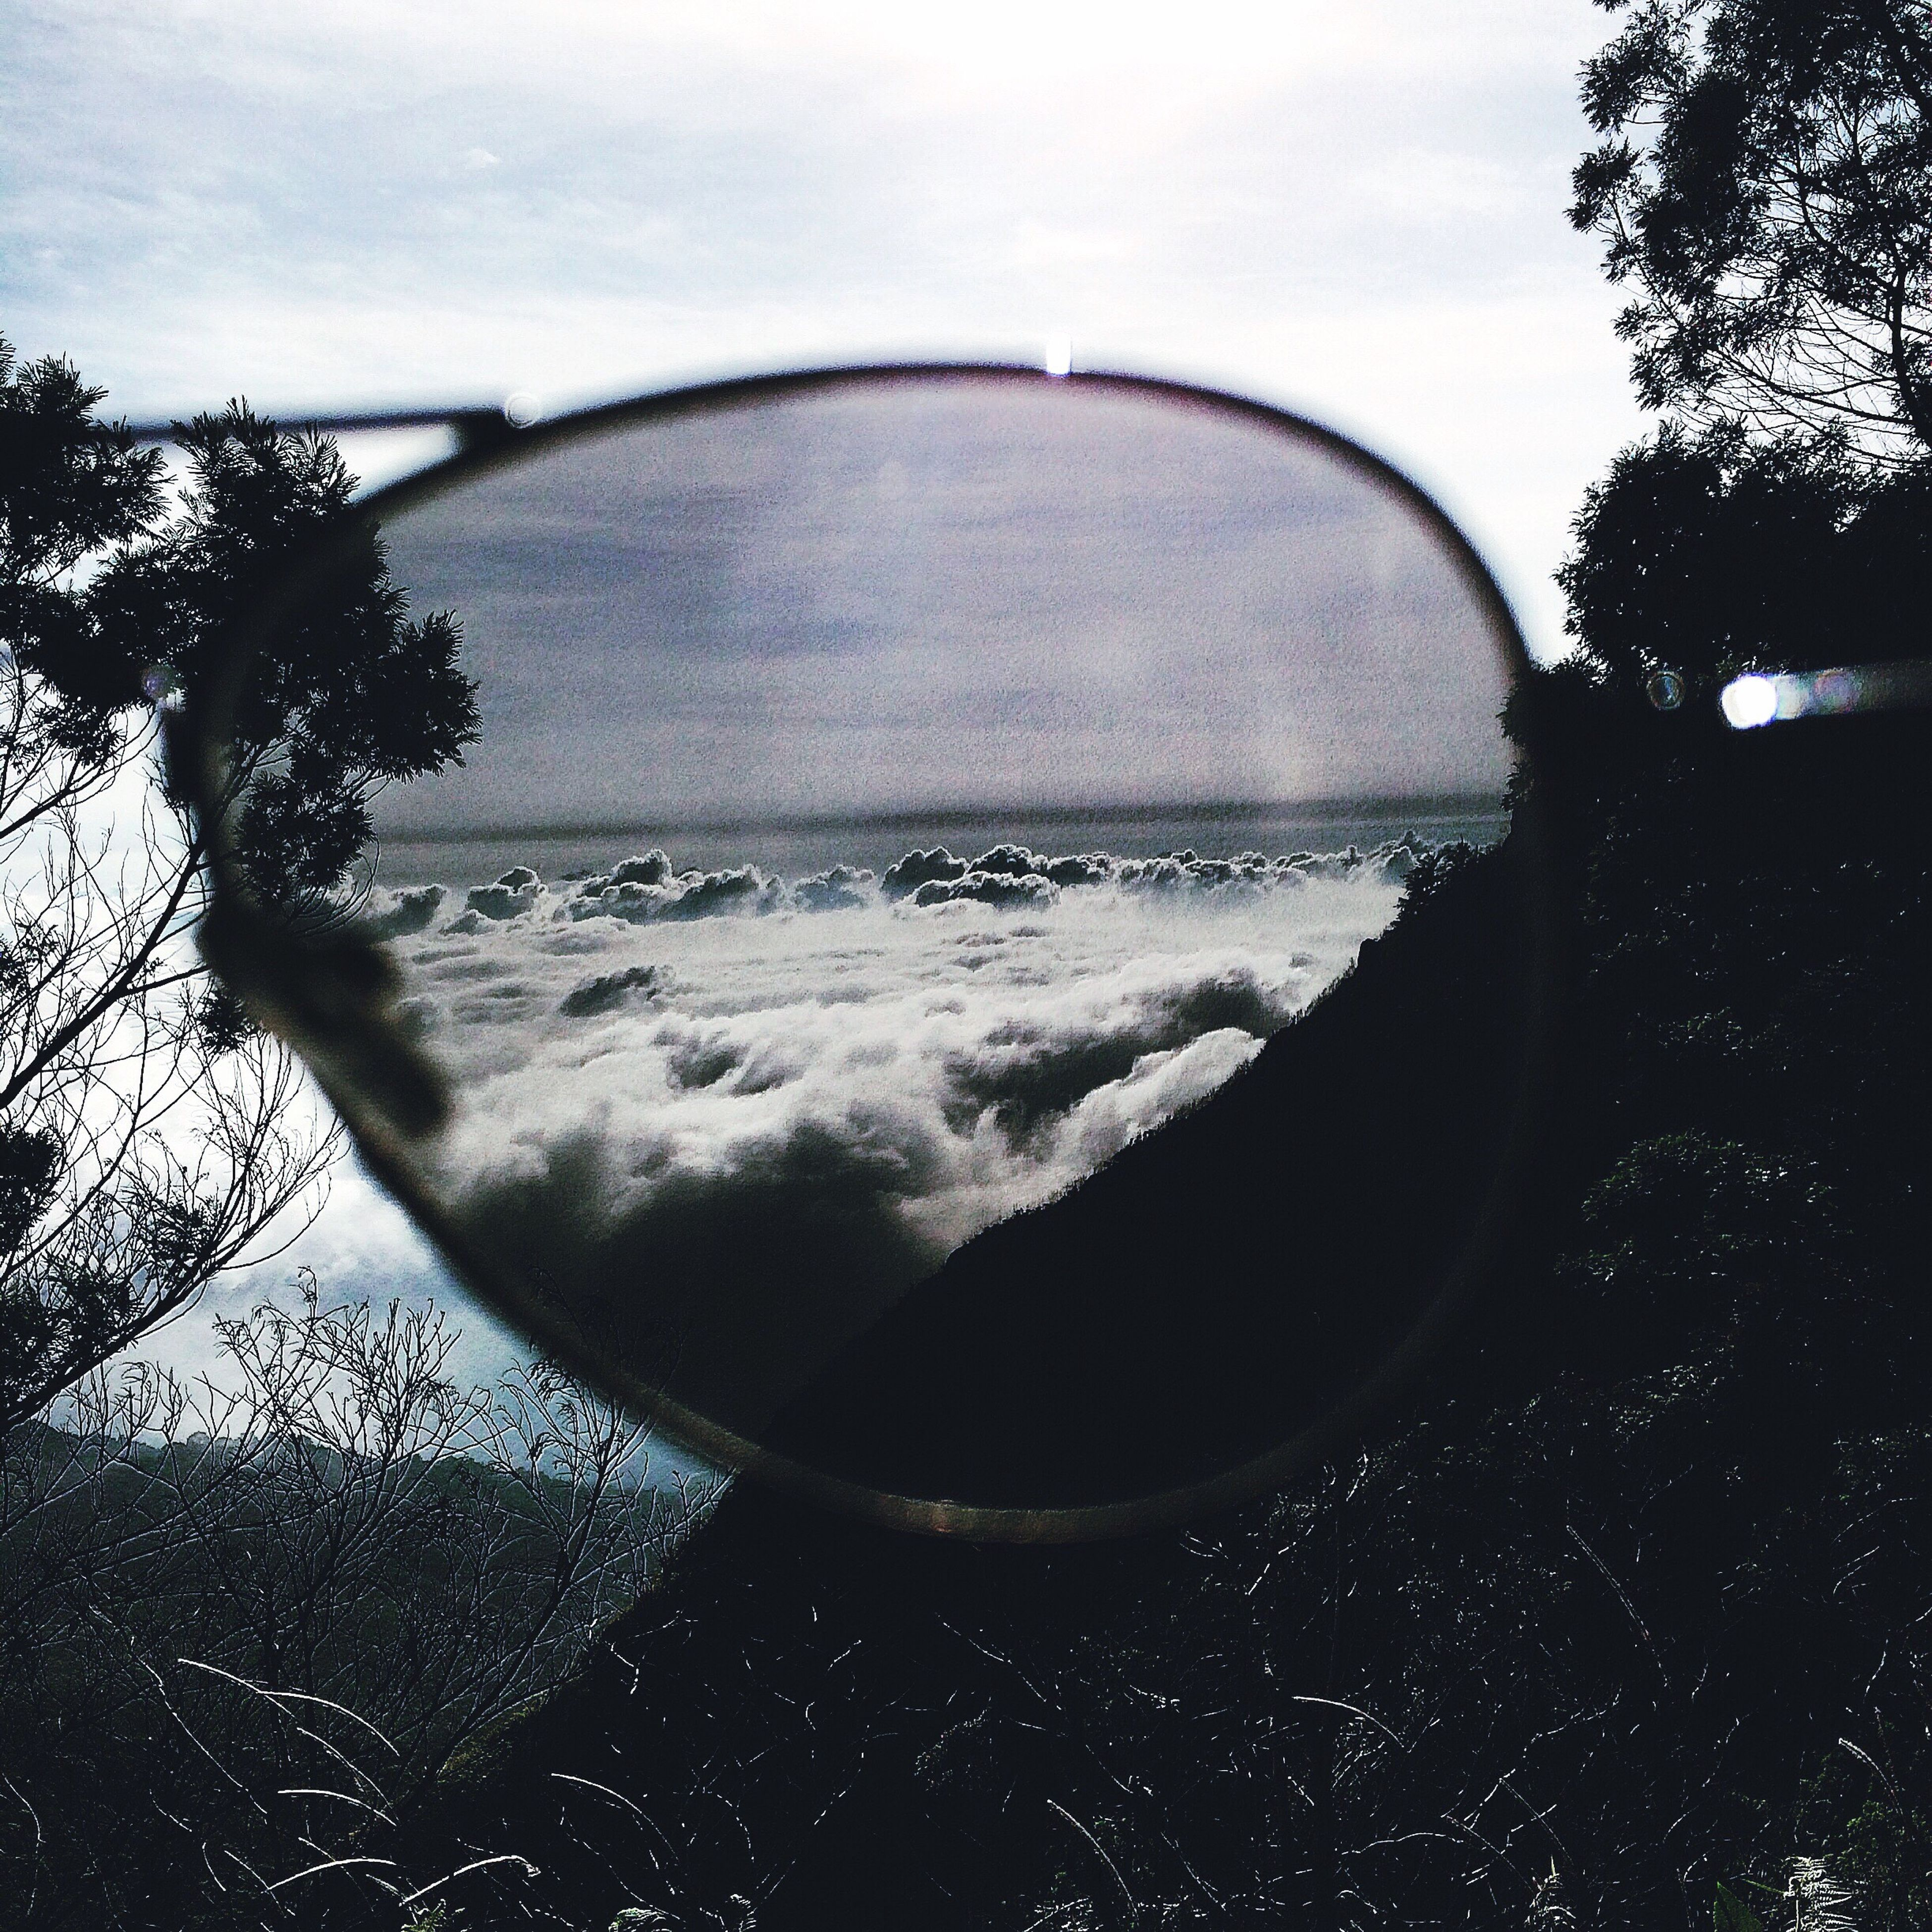 water, sky, reflection, scenics, circle, tree, beauty in nature, nature, tranquil scene, sea, tranquility, transparent, close-up, wet, cloud - sky, drop, side-view mirror, transportation, cloud, outdoors